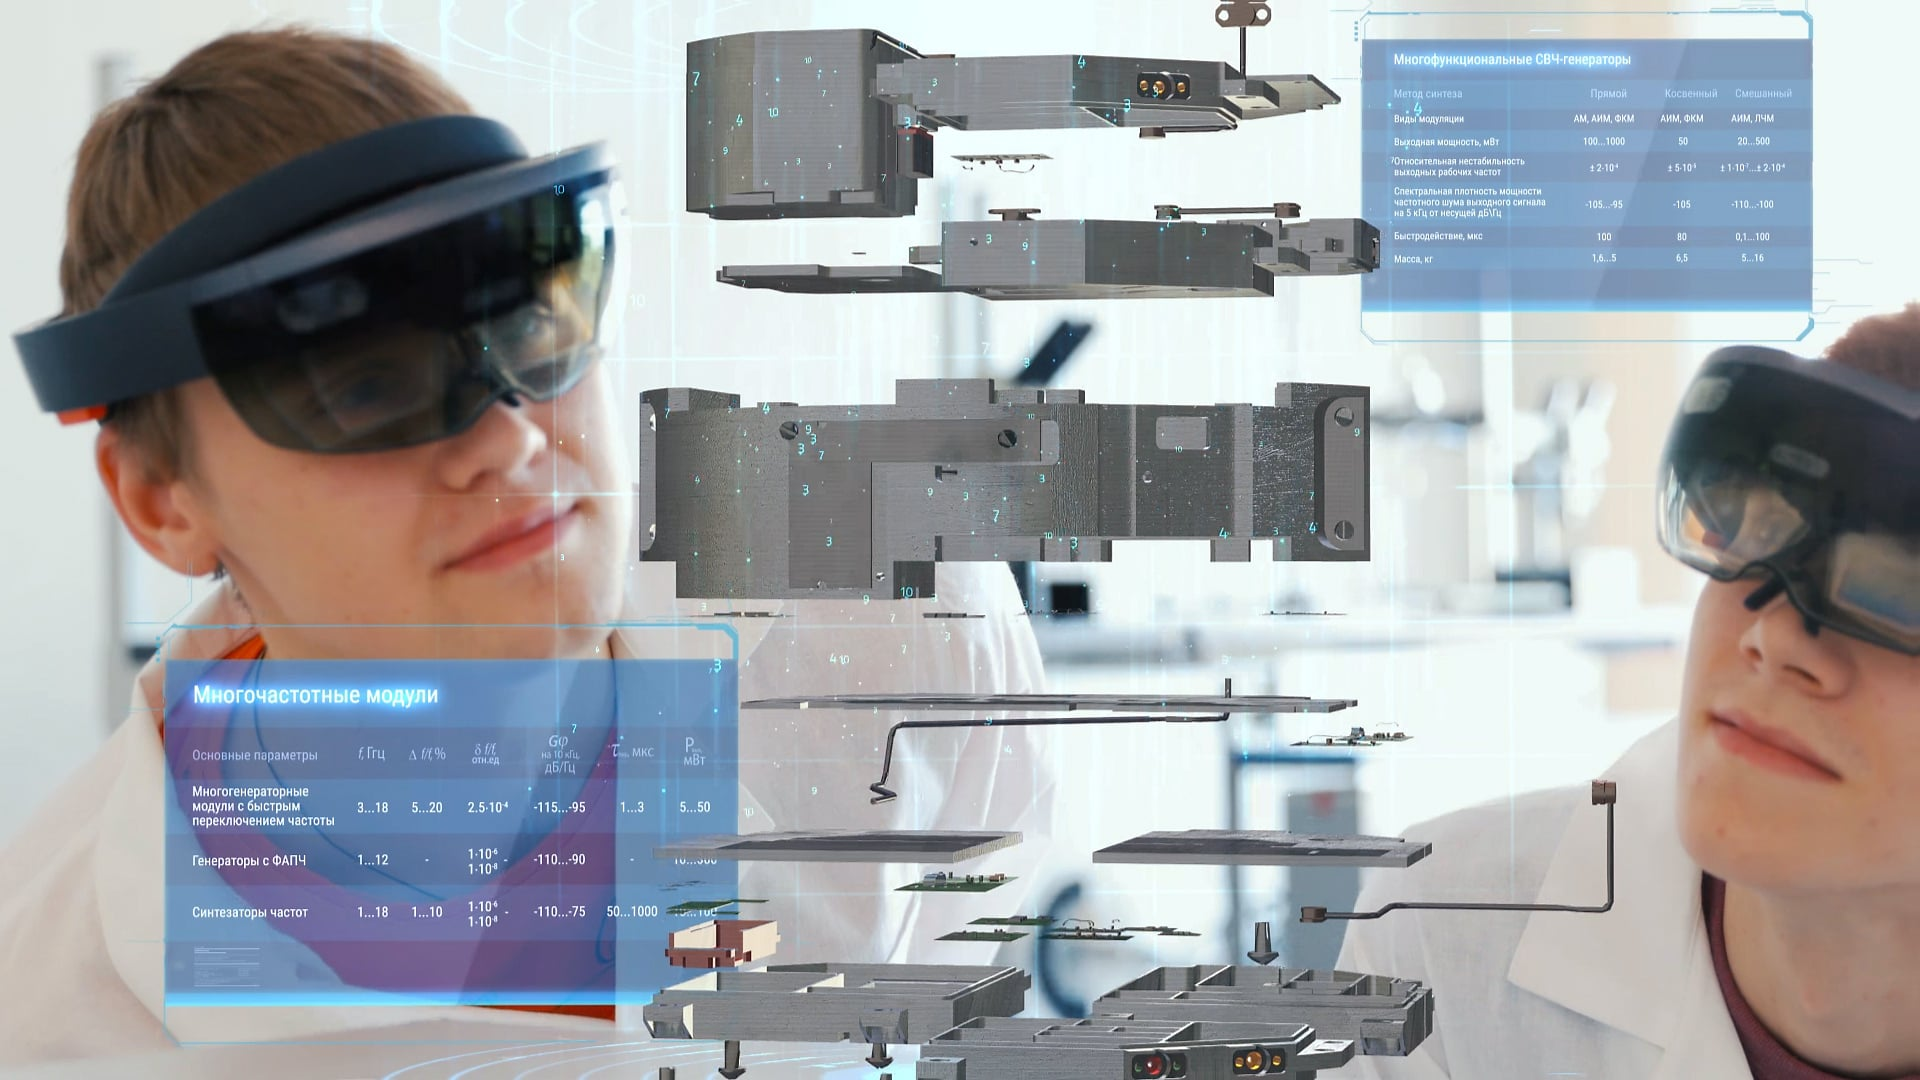 The use of augmented reality glasses can greatly facilitate designing process.